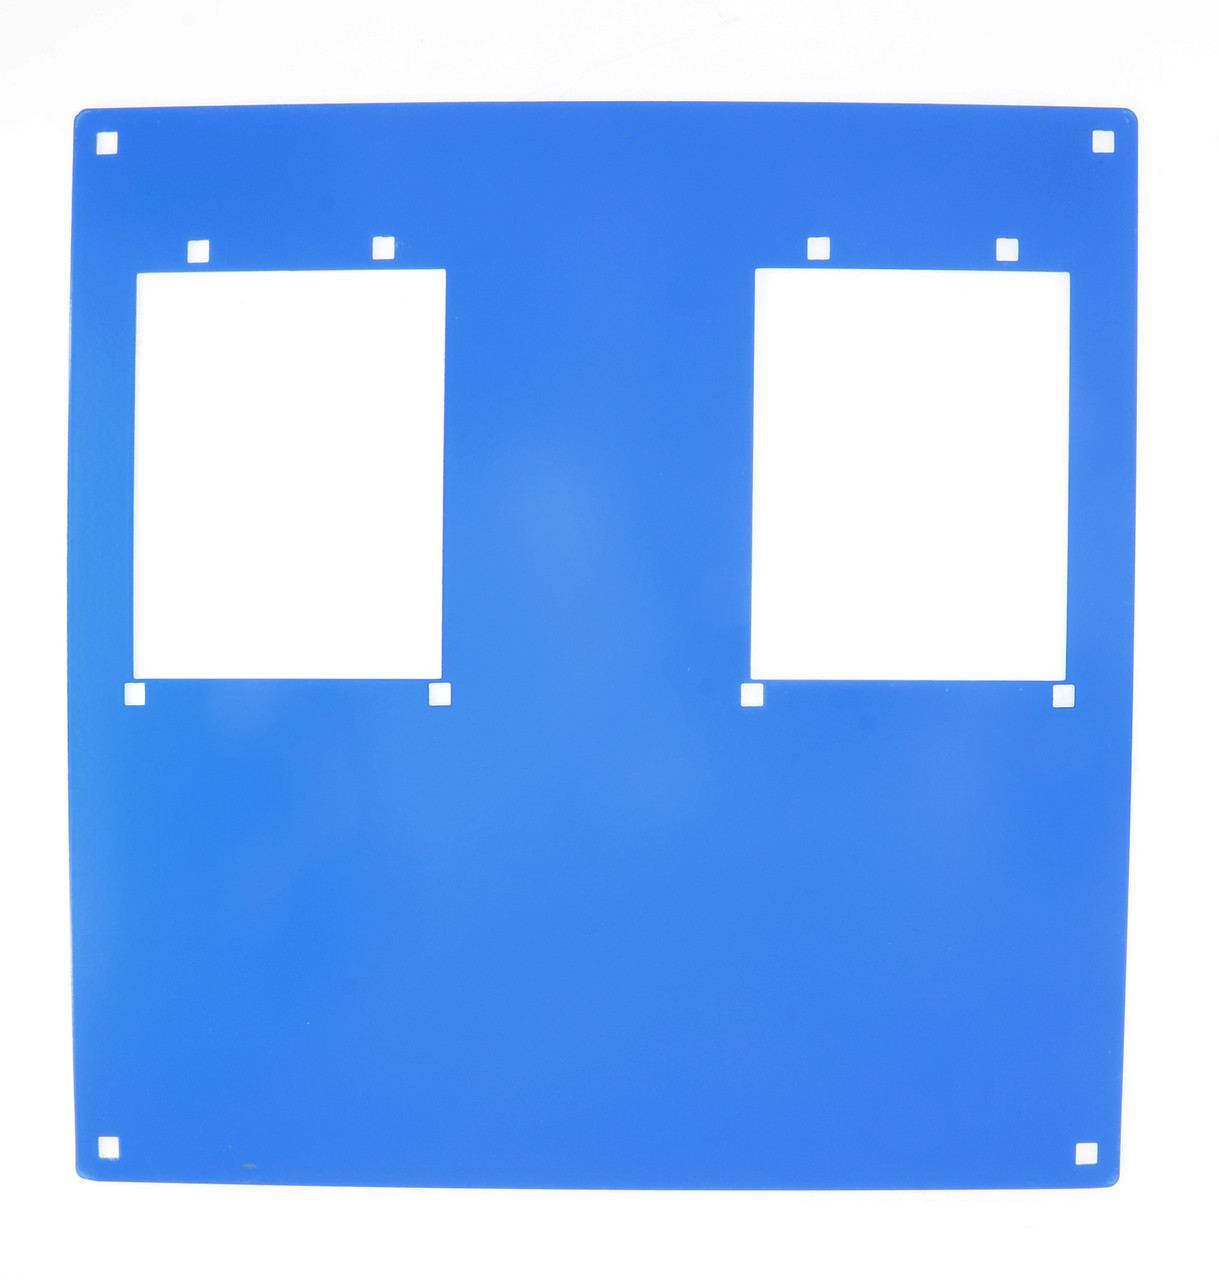 Plate with 2 DBA Slots for Virtual Rabbids (RB1-FM-121-R0)